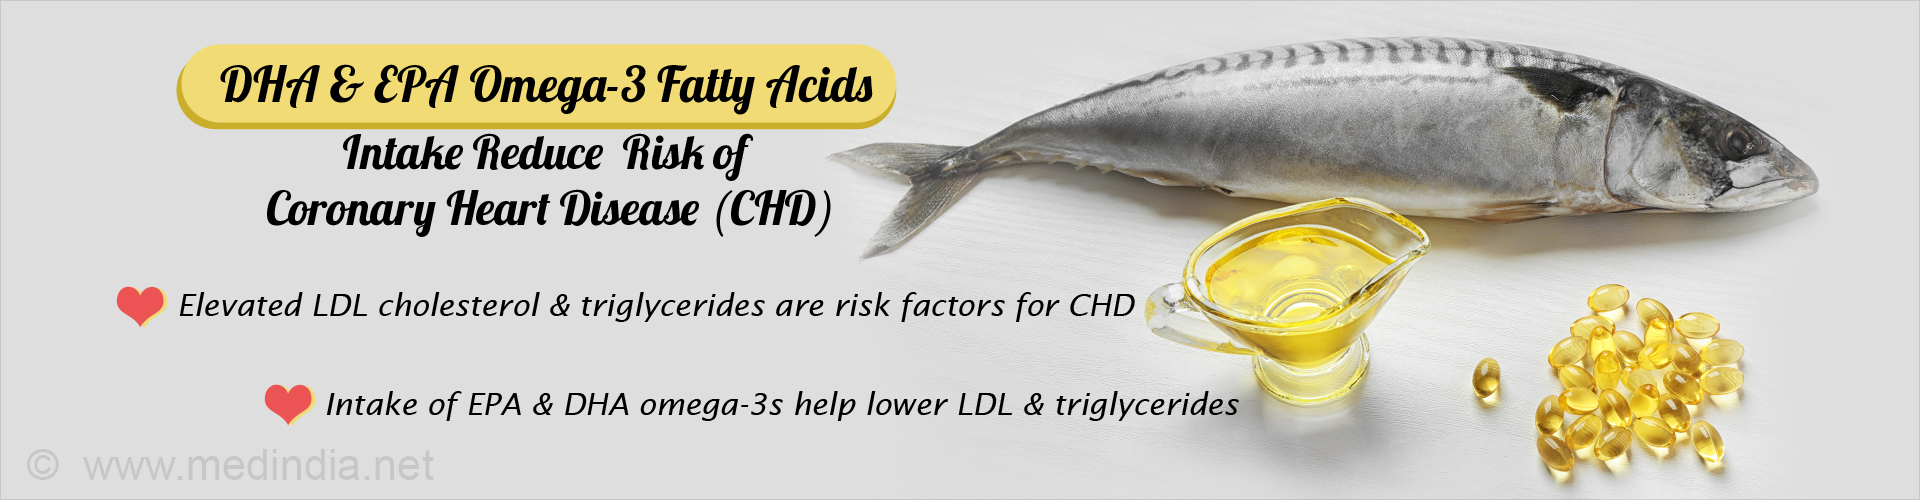 Omega-3 Fatty Acids can Lower the Risk of Coronary Heart Disease